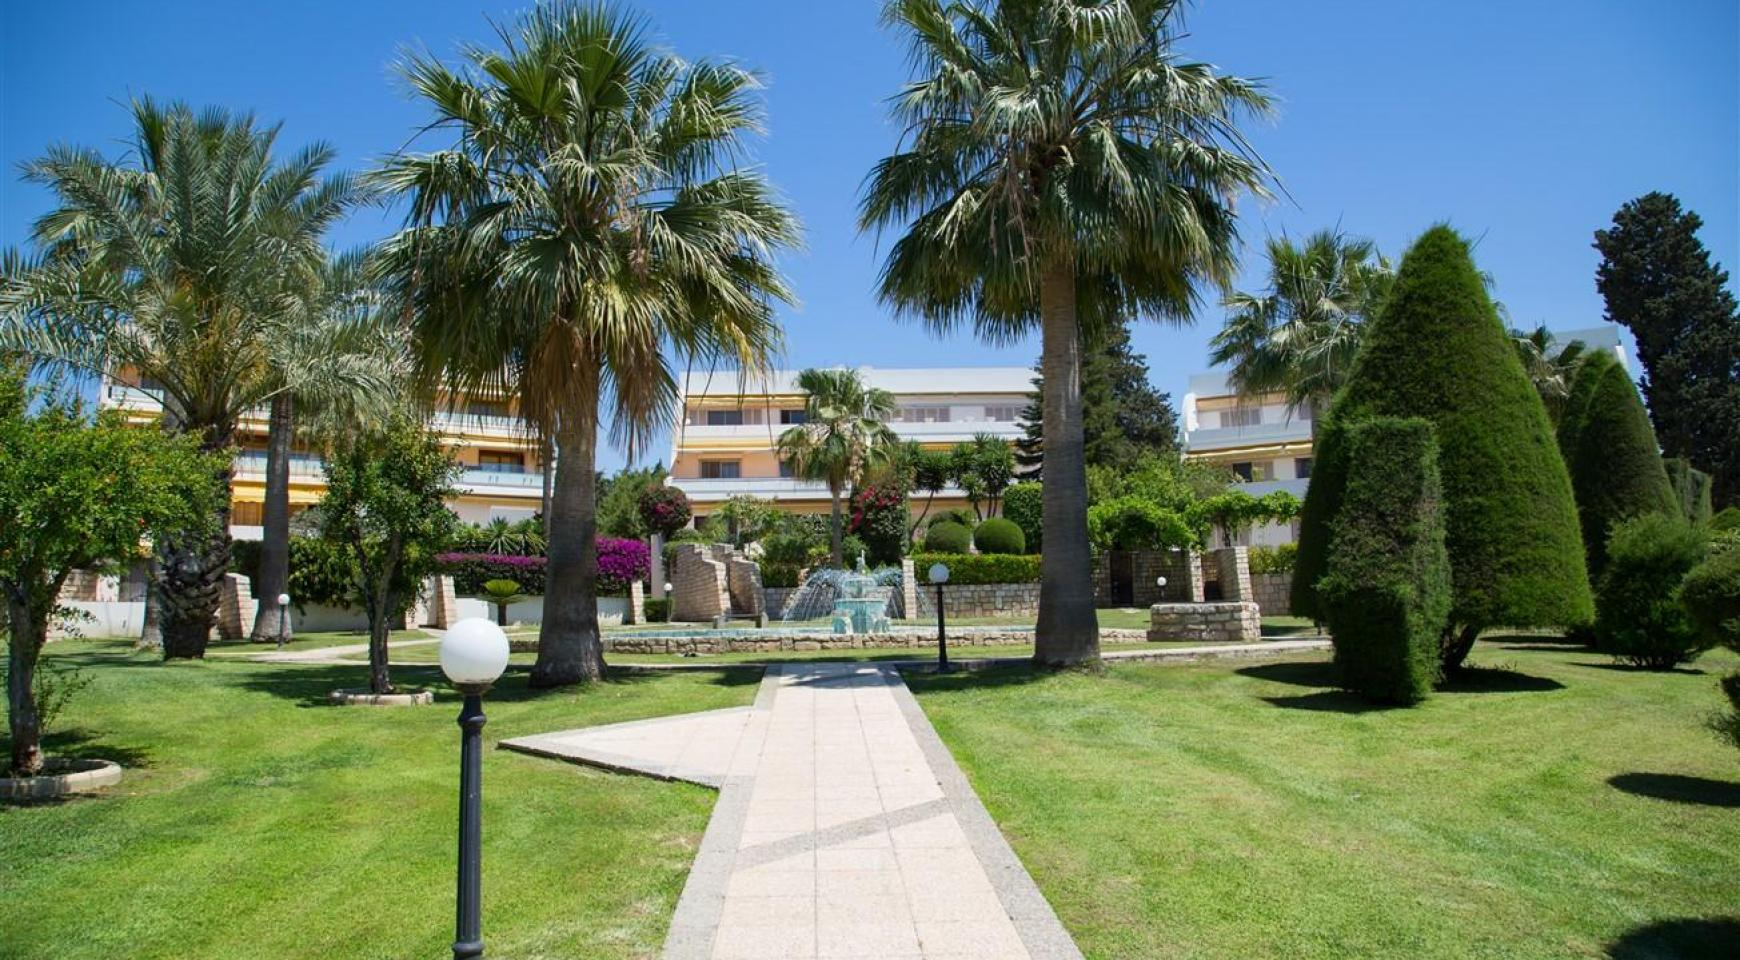 Luxury Modern 3 Bedroom Apartment in Thera Complex by the Sea - 3